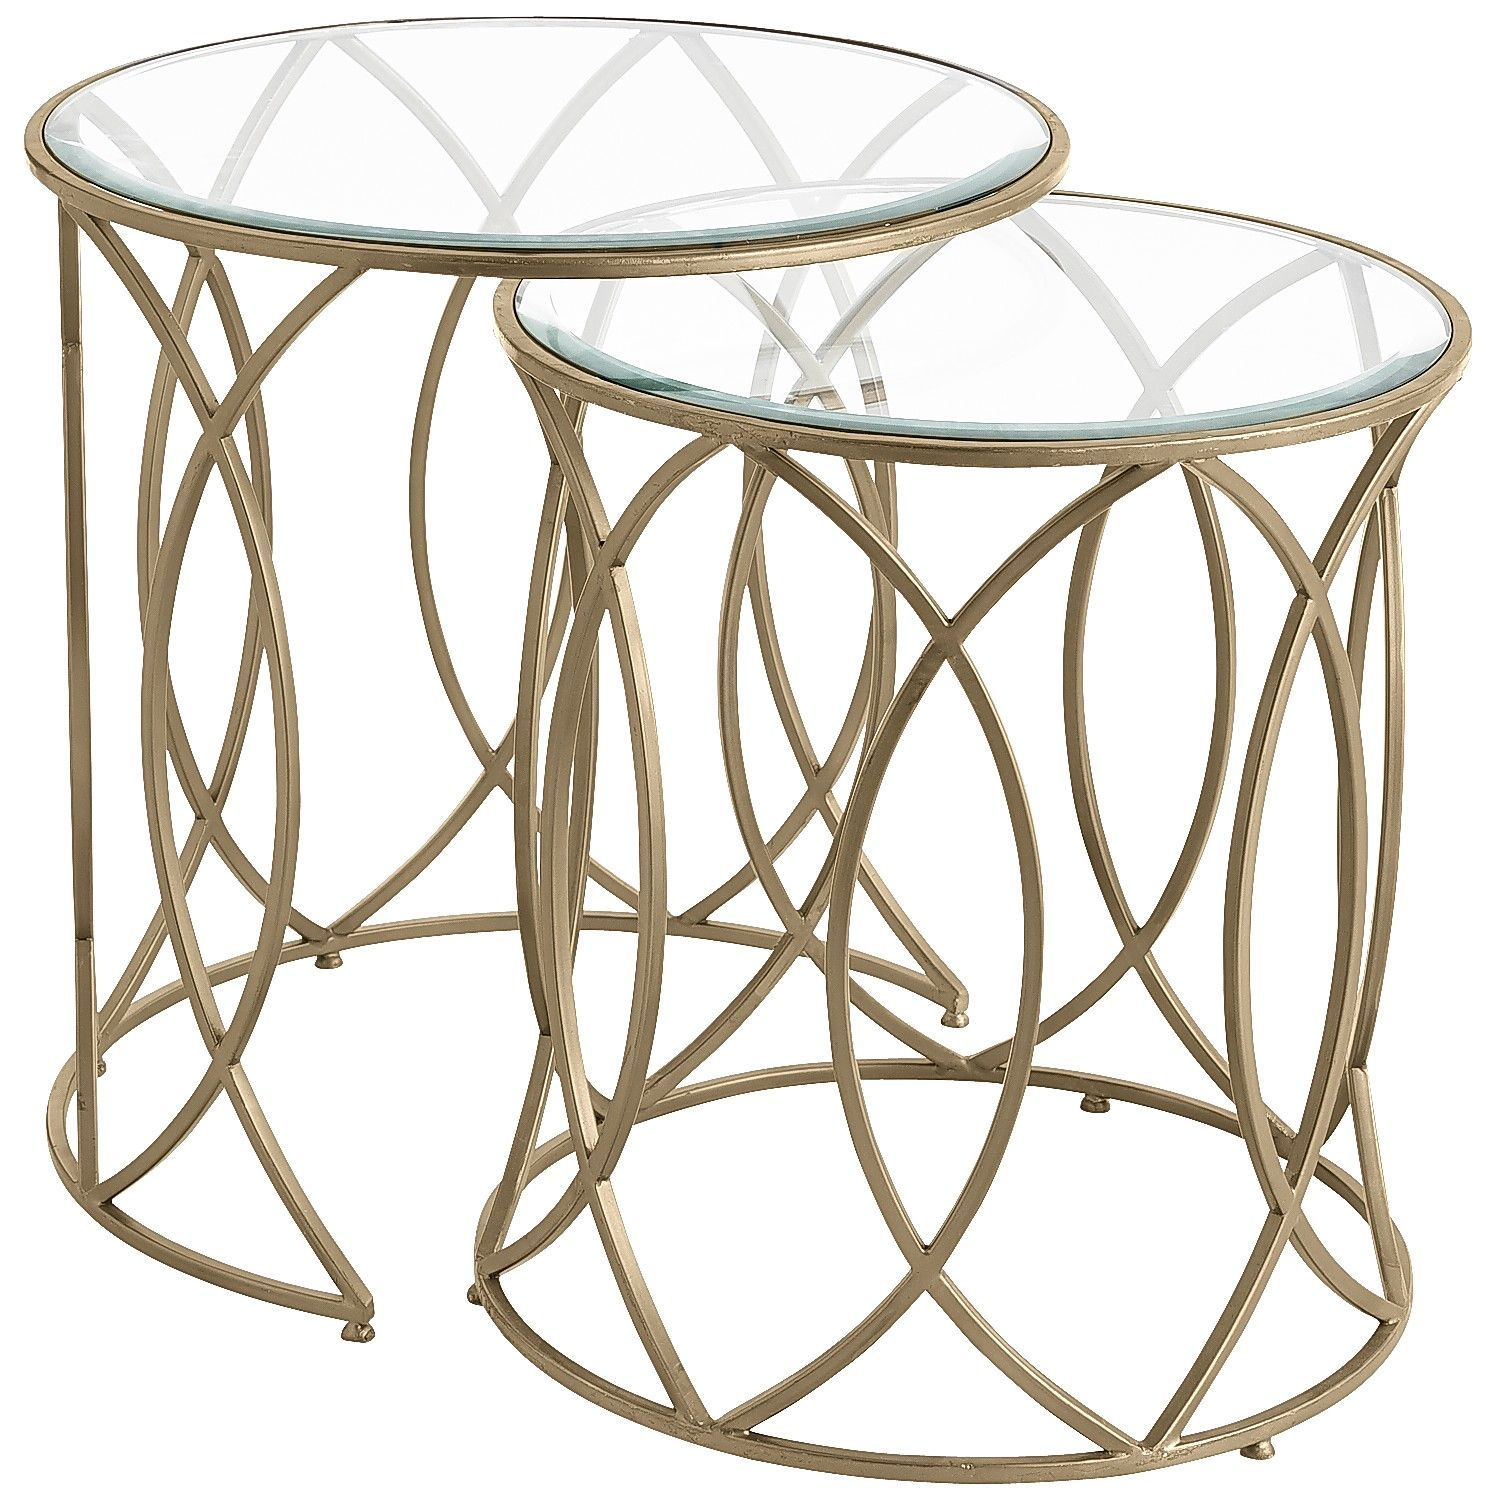 elana bronze iron round nesting tables home accent table living room side pier imports white and wood nest gold coffee hexagon christmas tablecloth runner lamp drum throne for